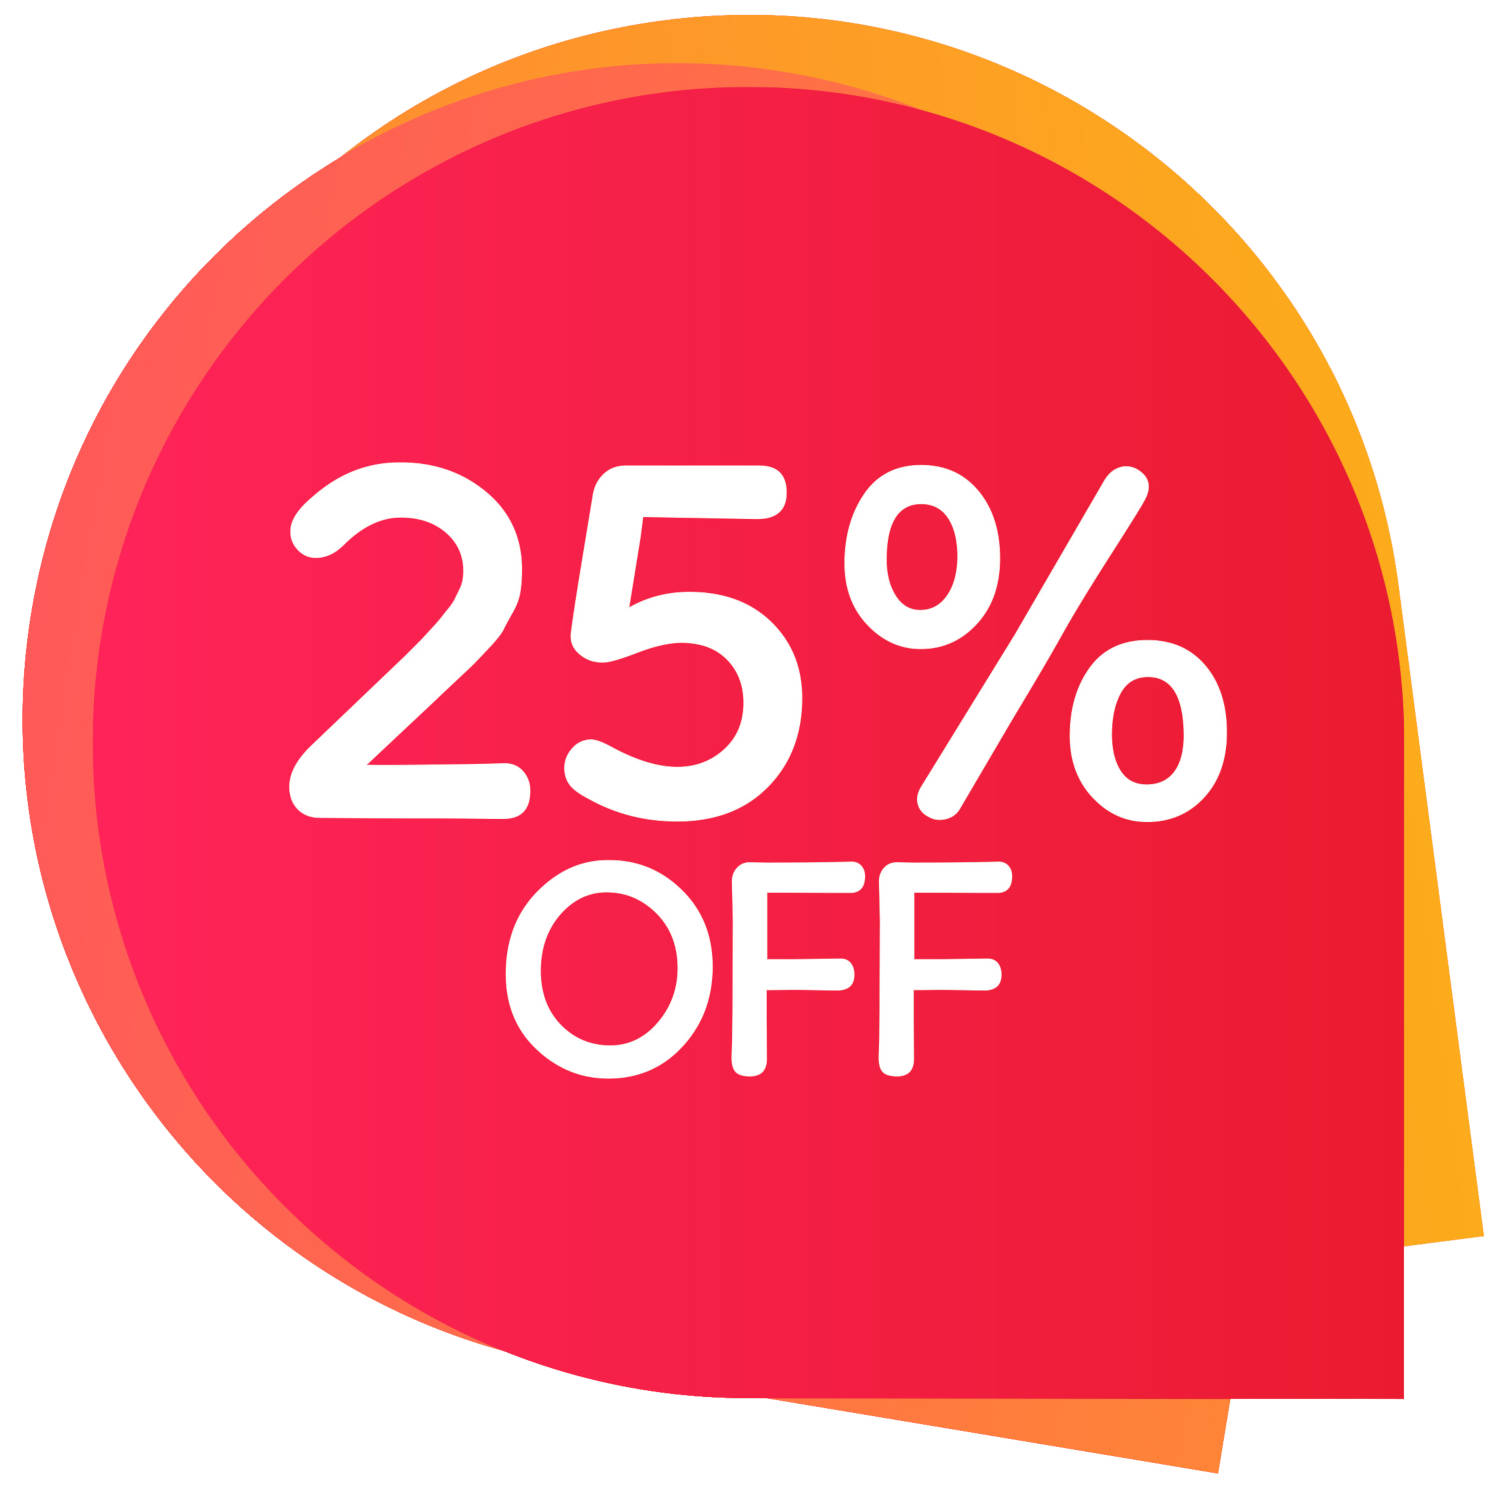 Graphic showing a 25 percent off discount